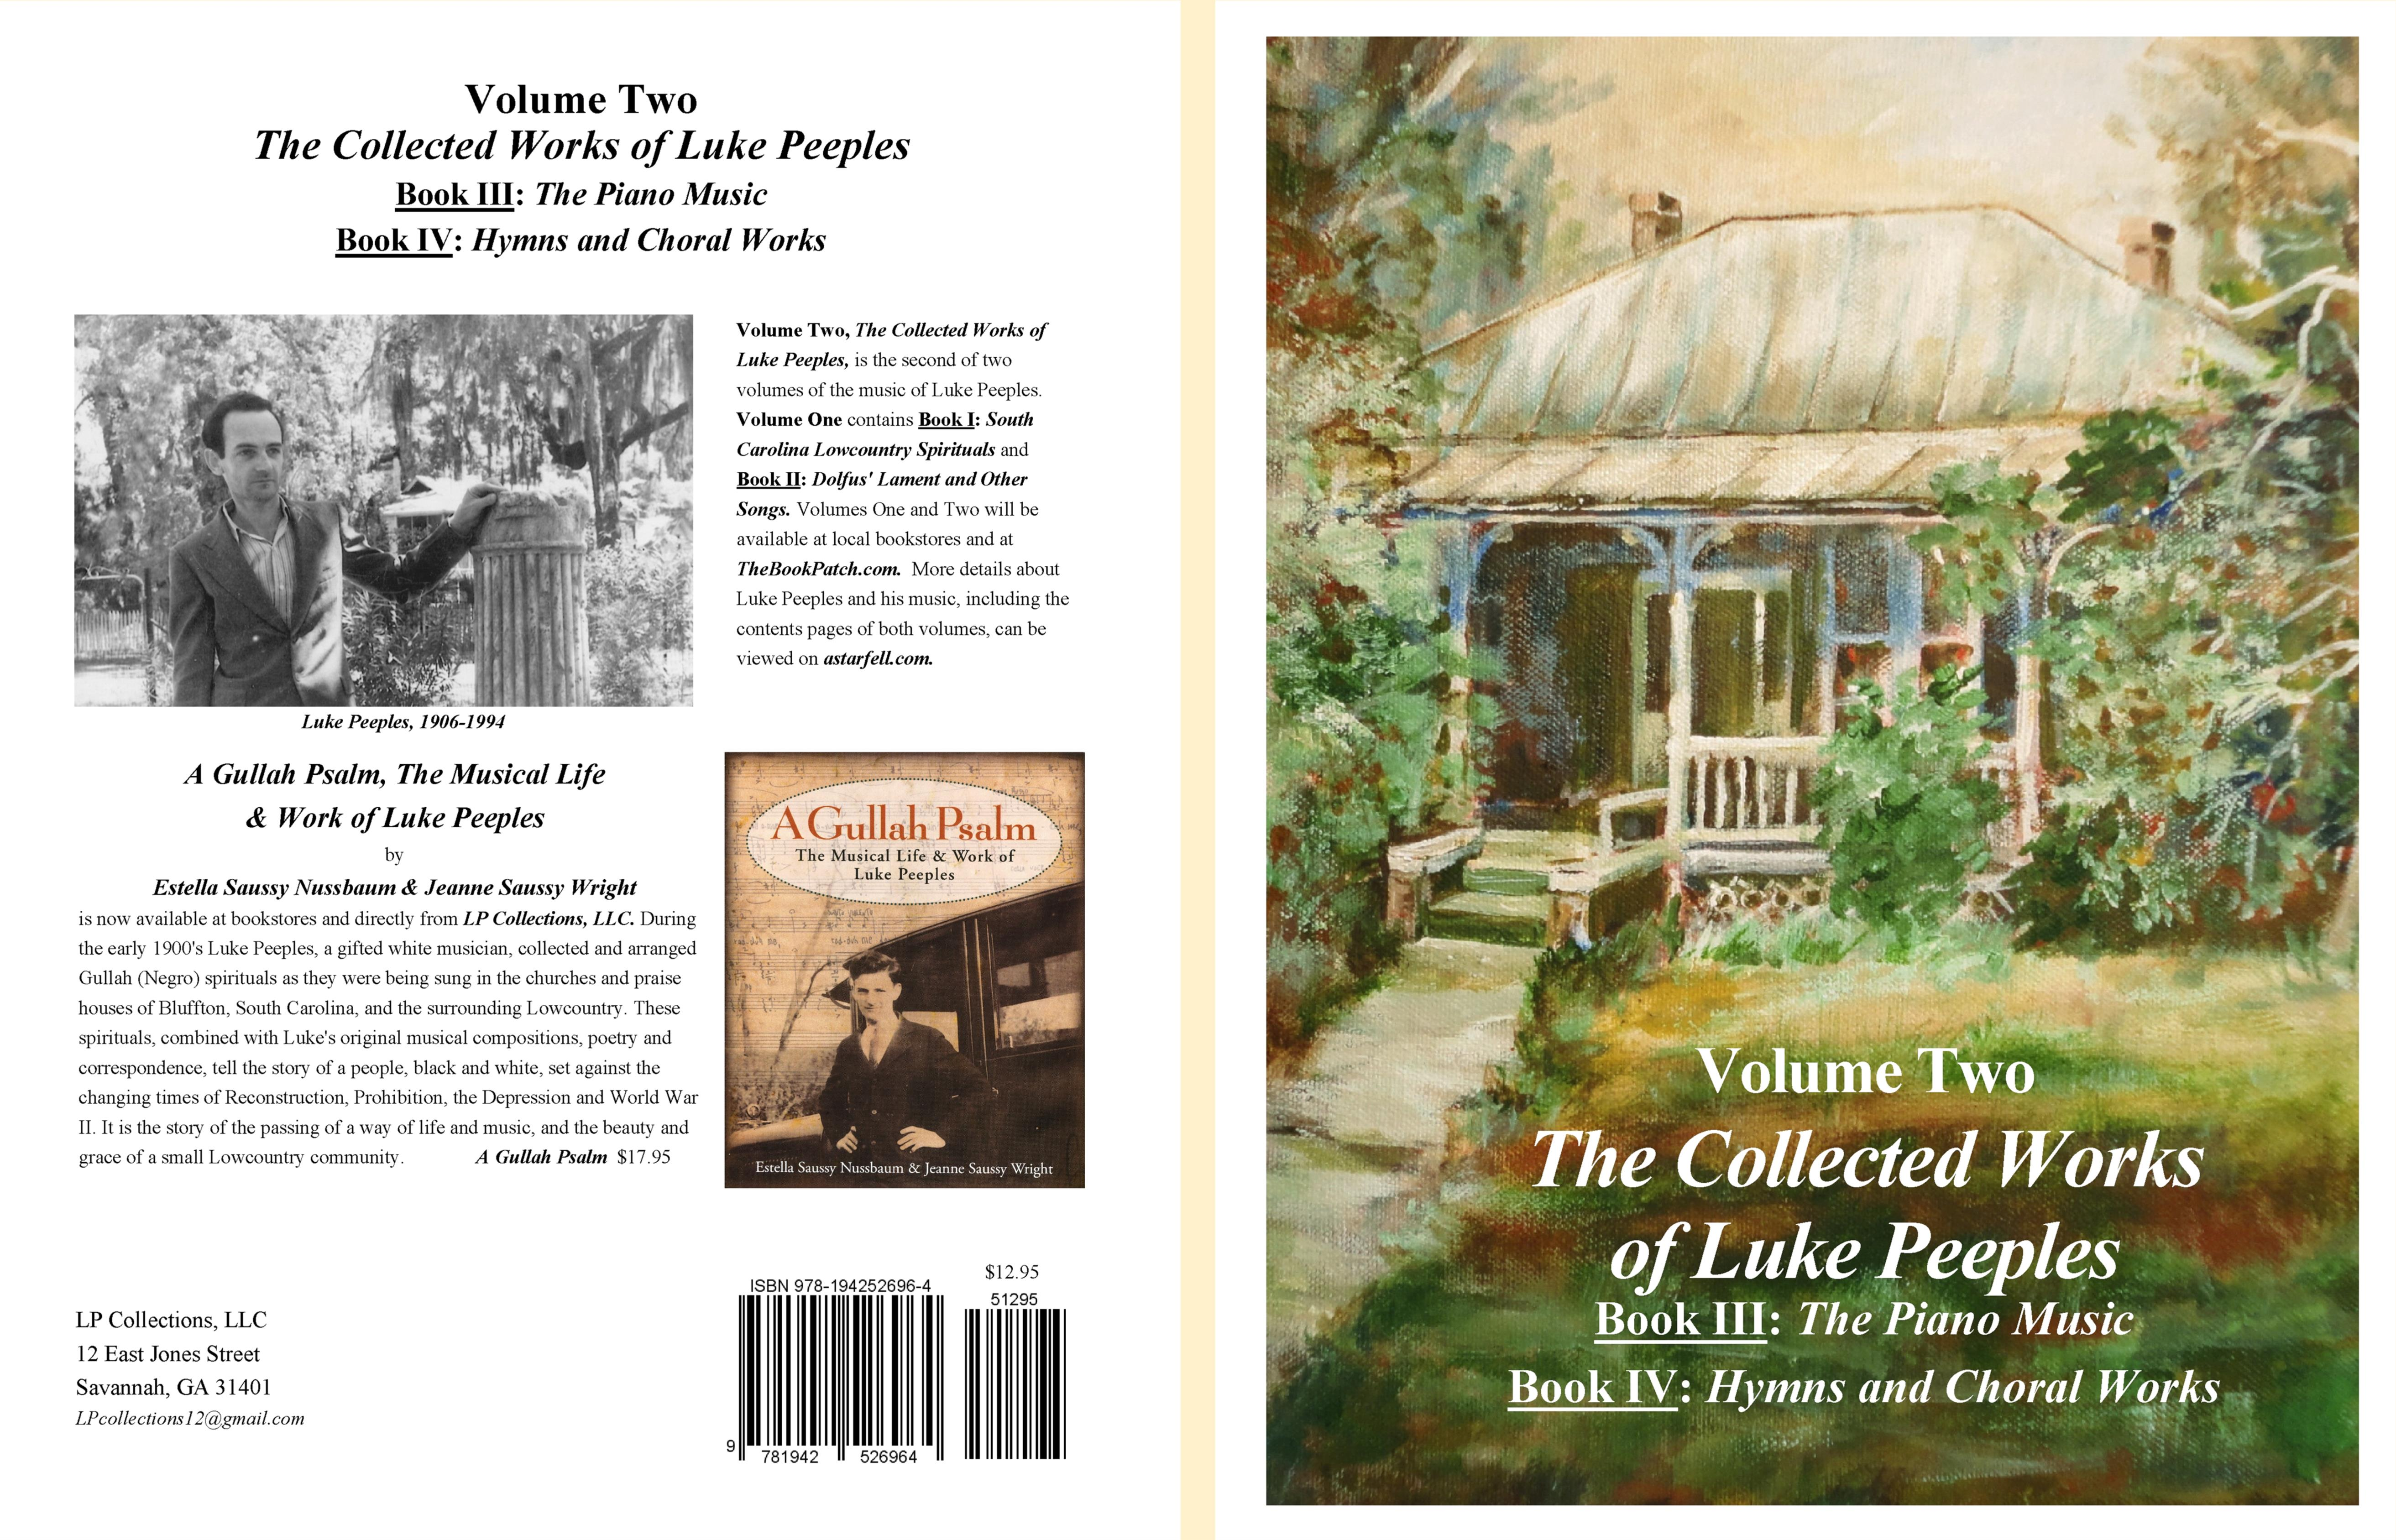 The Collected Works of Luke Peeples, Volume Two cover image